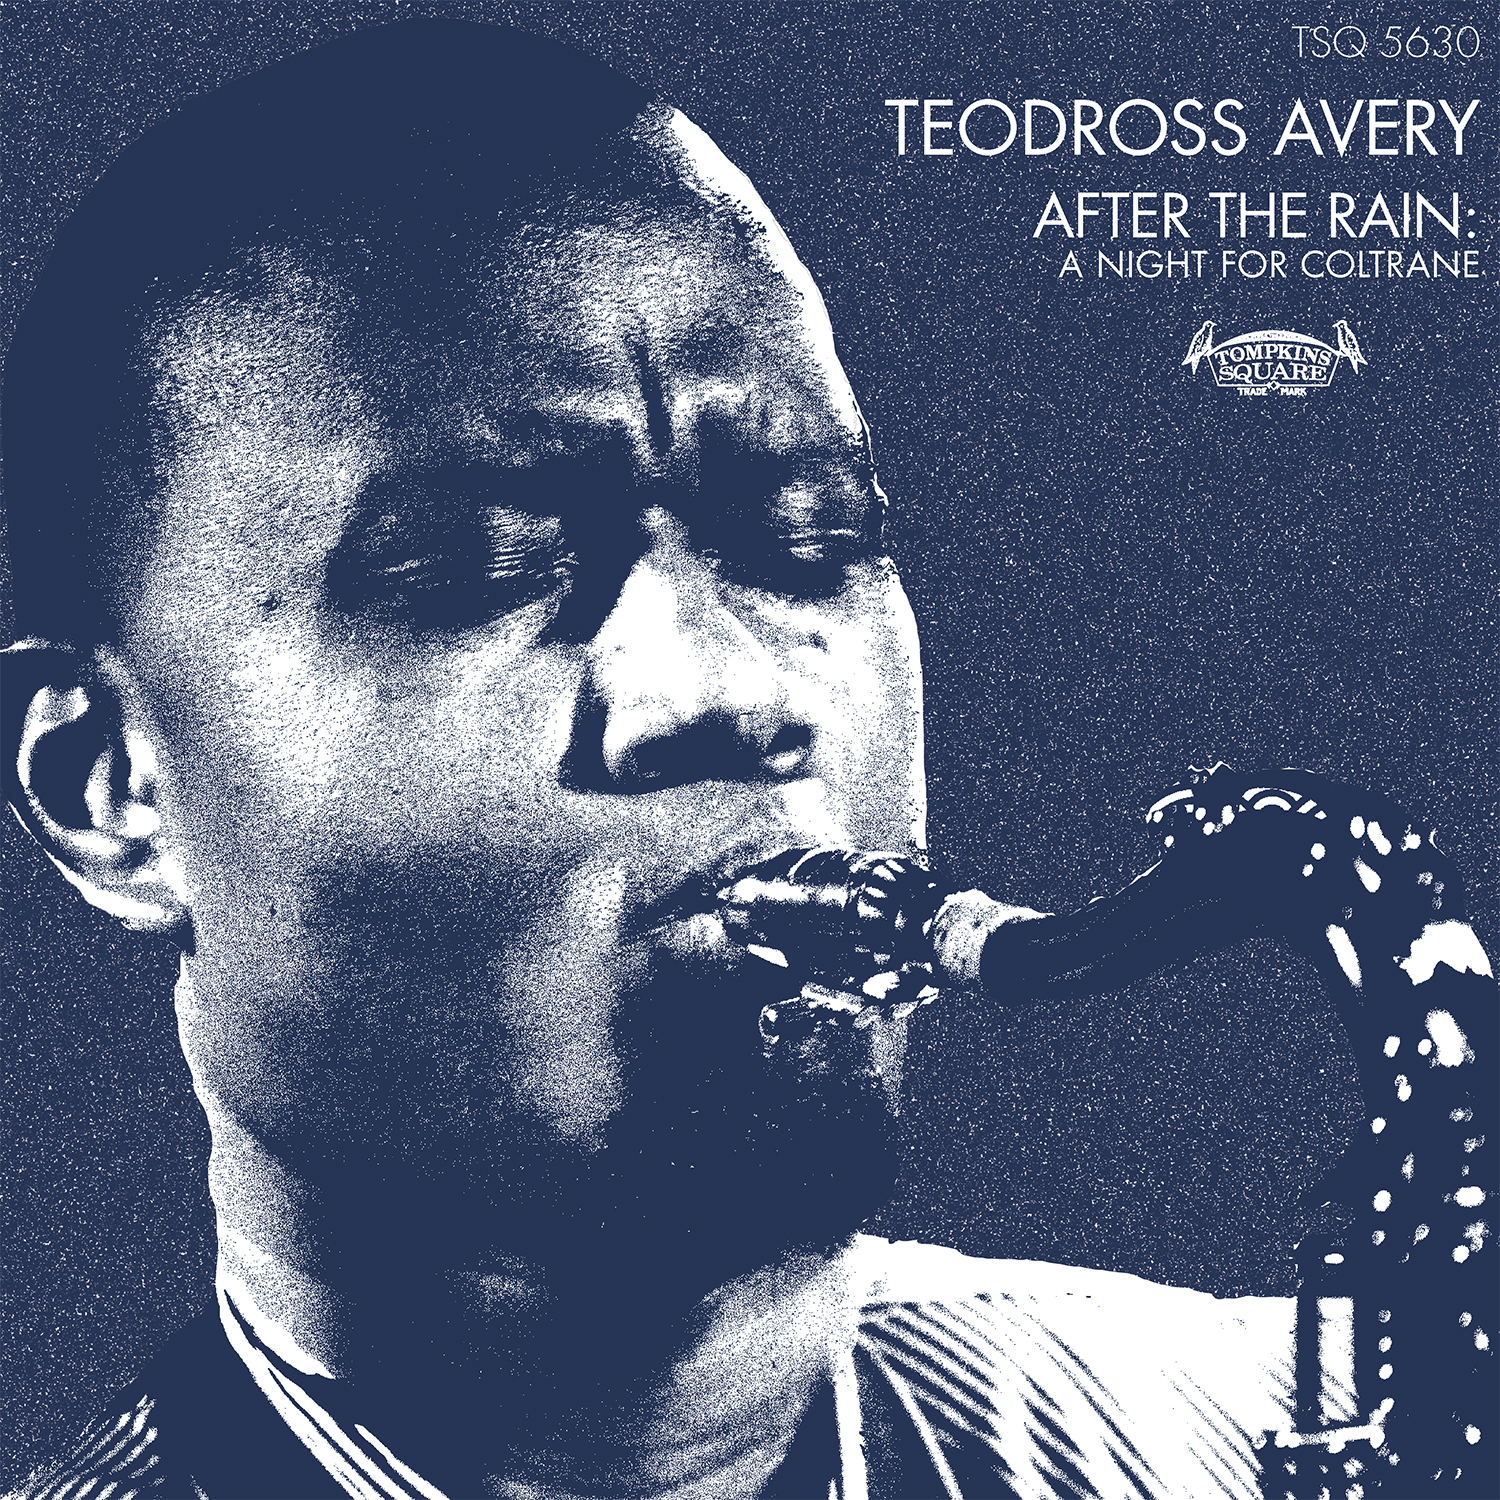 Teodross Avery After the Rain : A Night for Coltrane